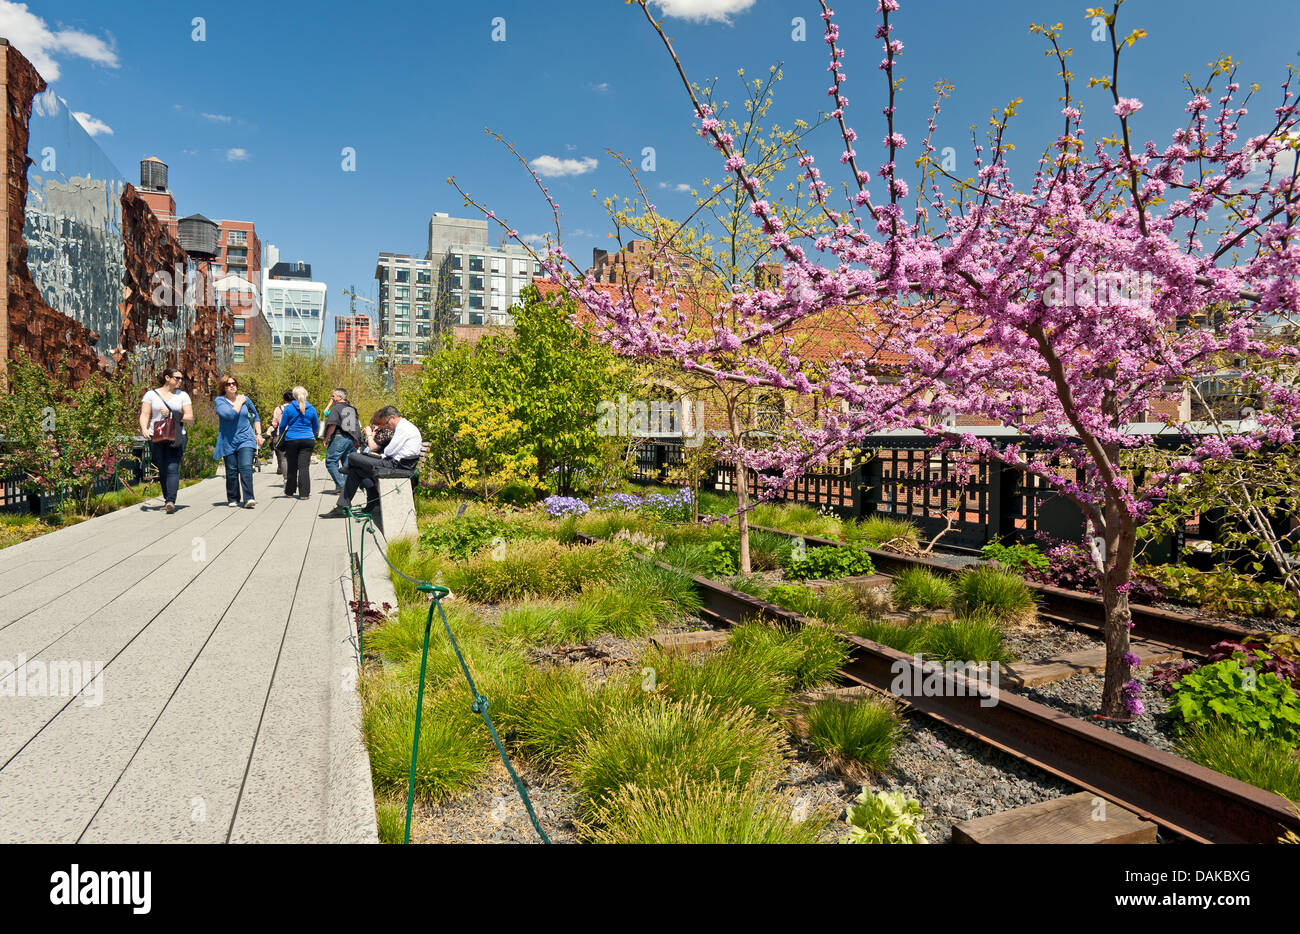 High Line New York Spring Bloom People Stock Photo, Royalty Free ...